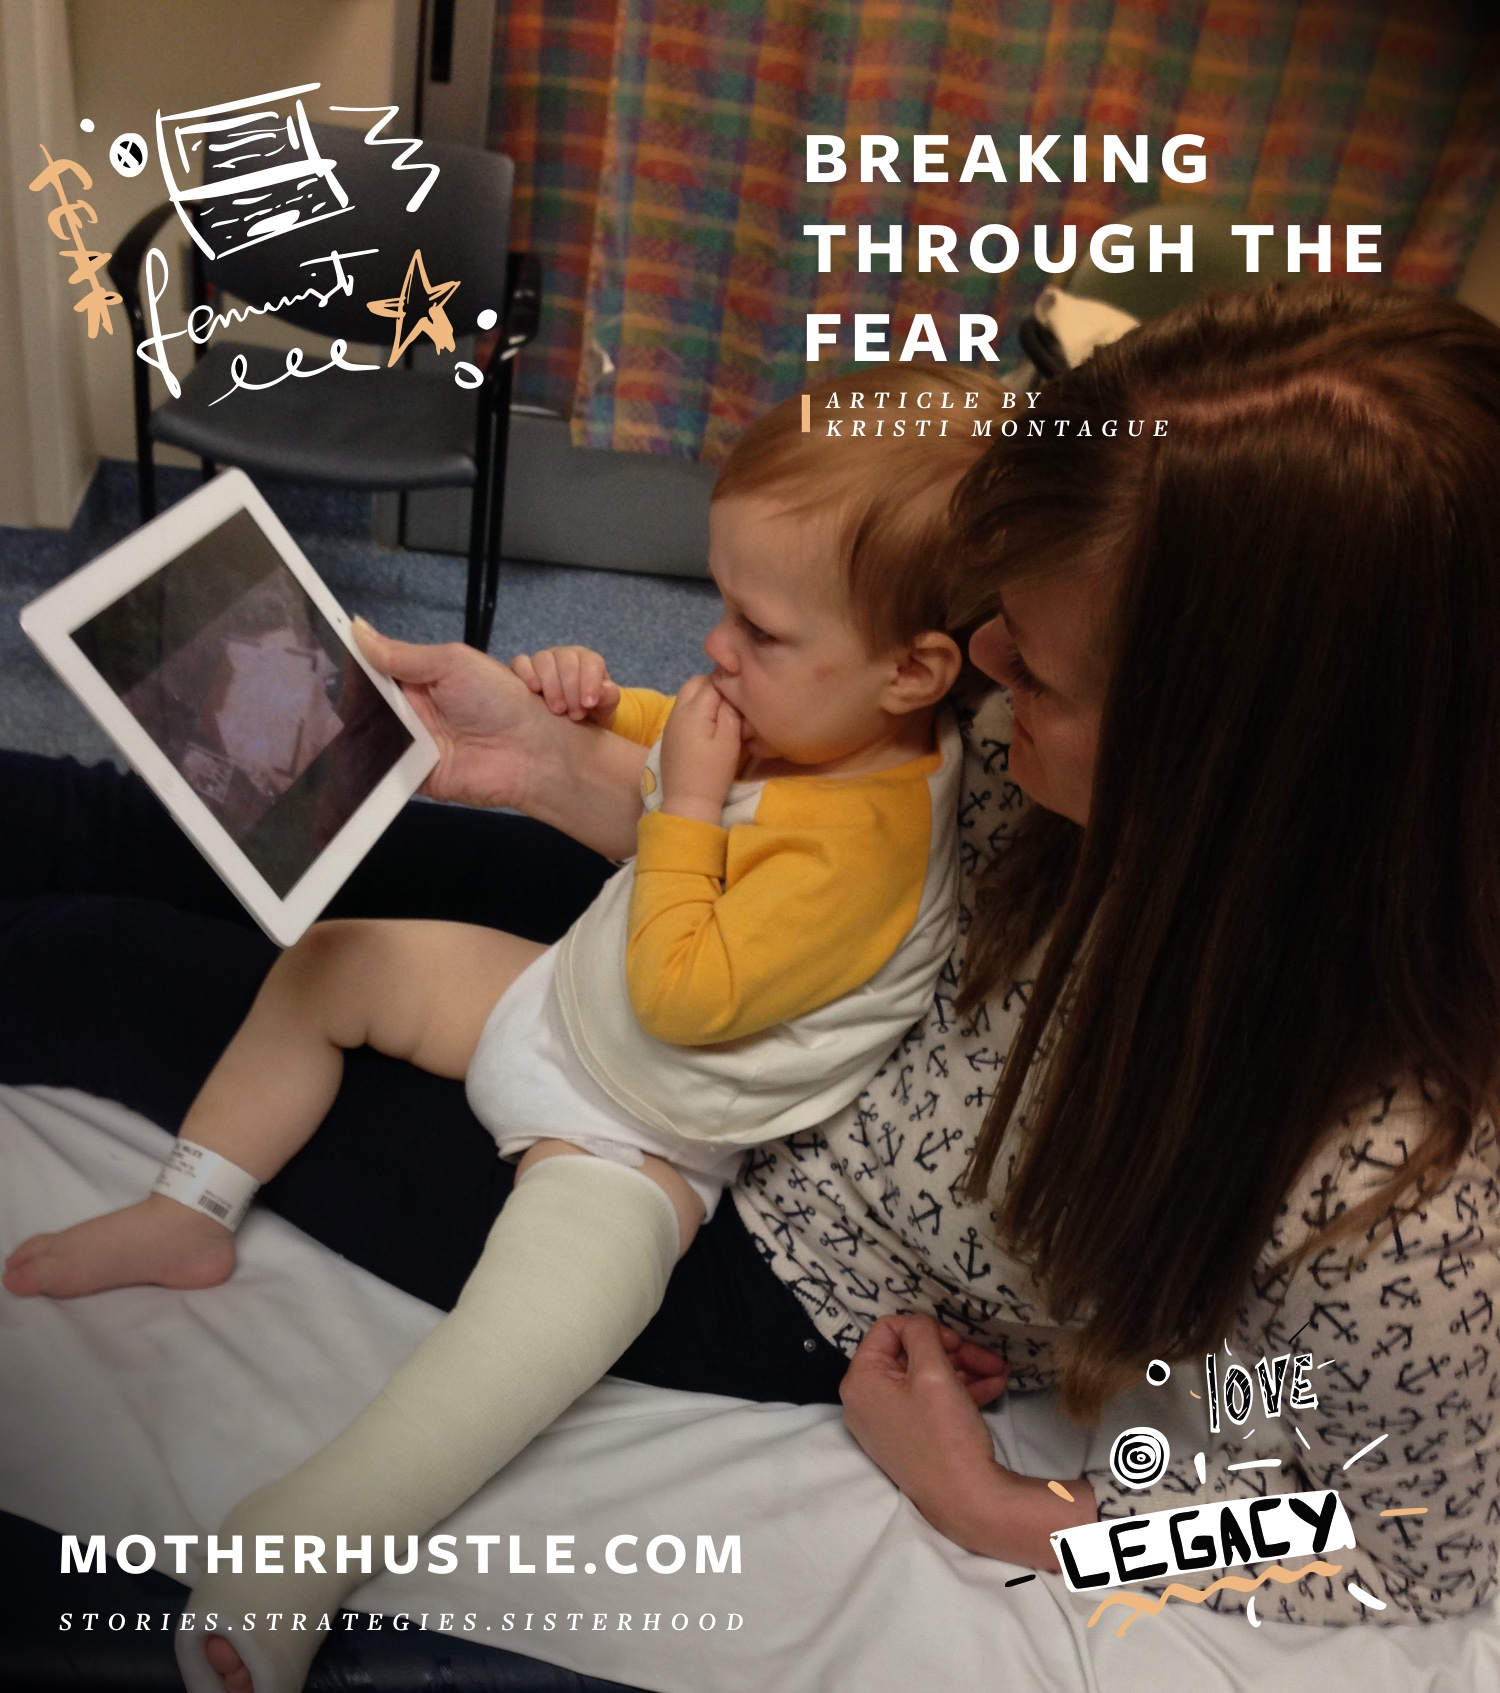 Breaking Through The Fear - by Kristi Montague for MotherHustle